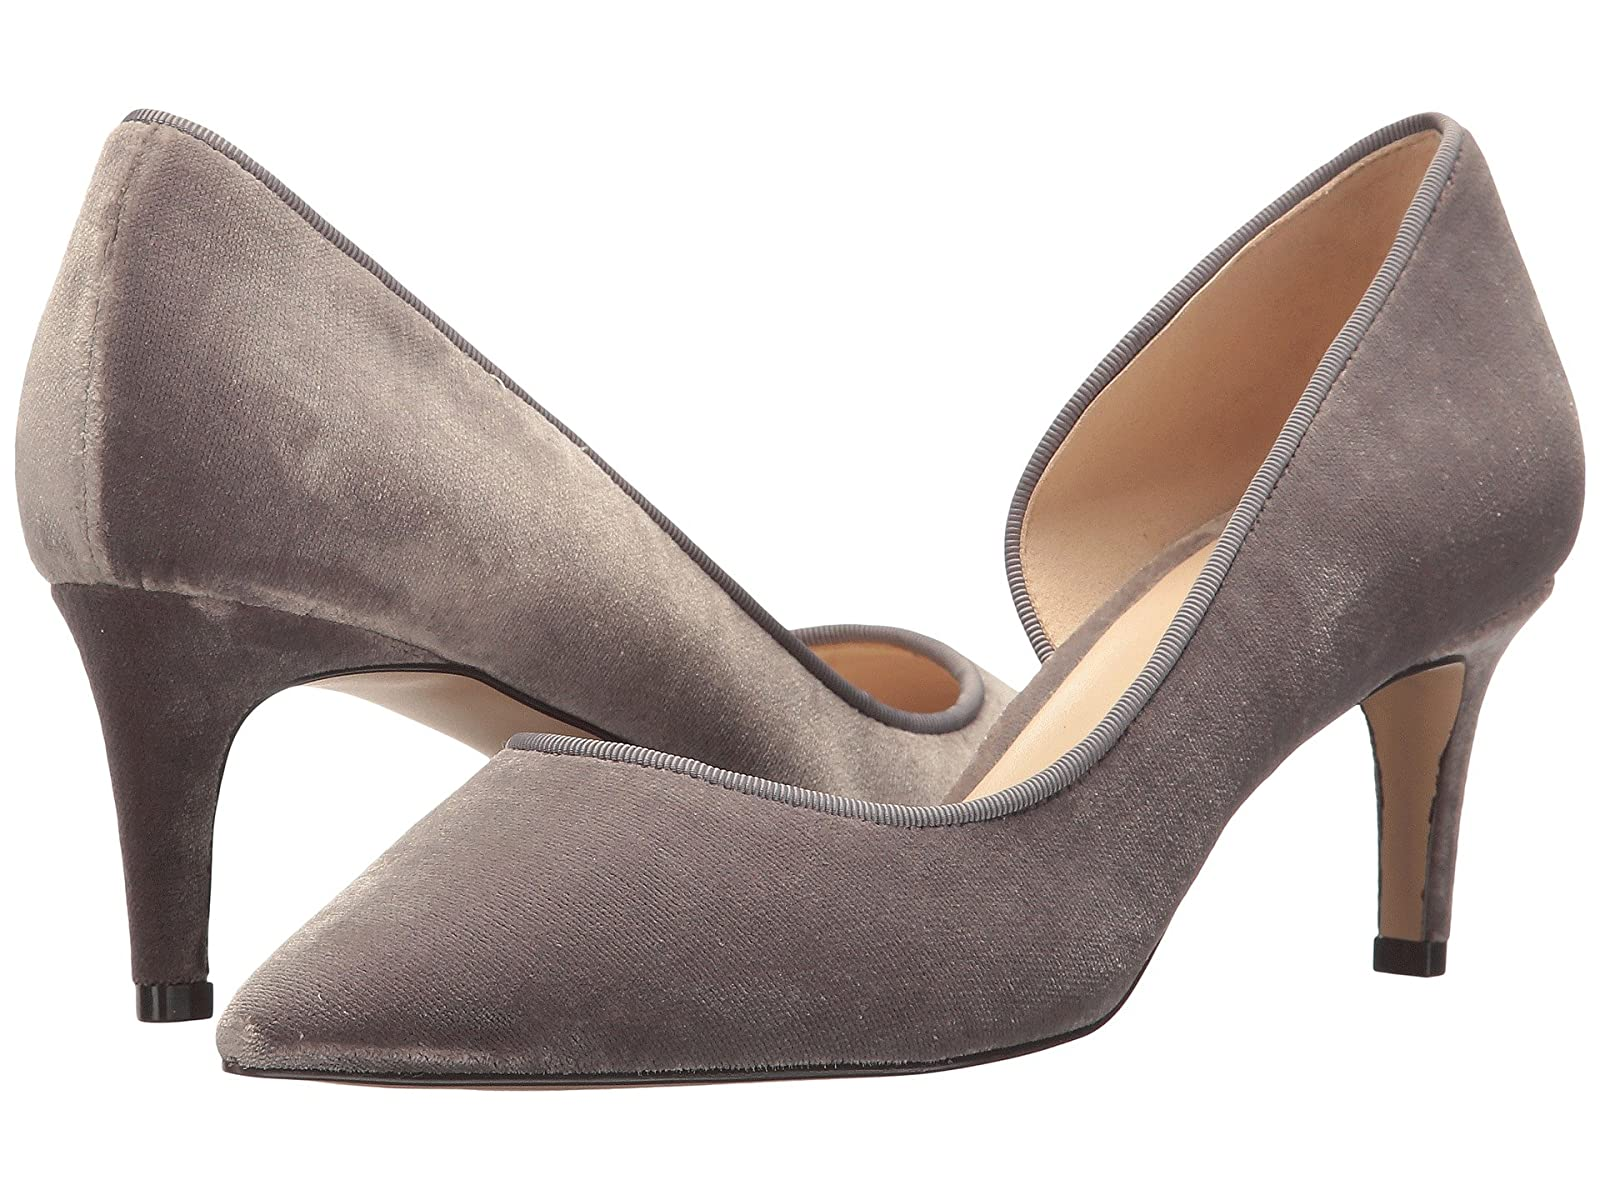 Nine West SarindaCheap and distinctive eye-catching shoes